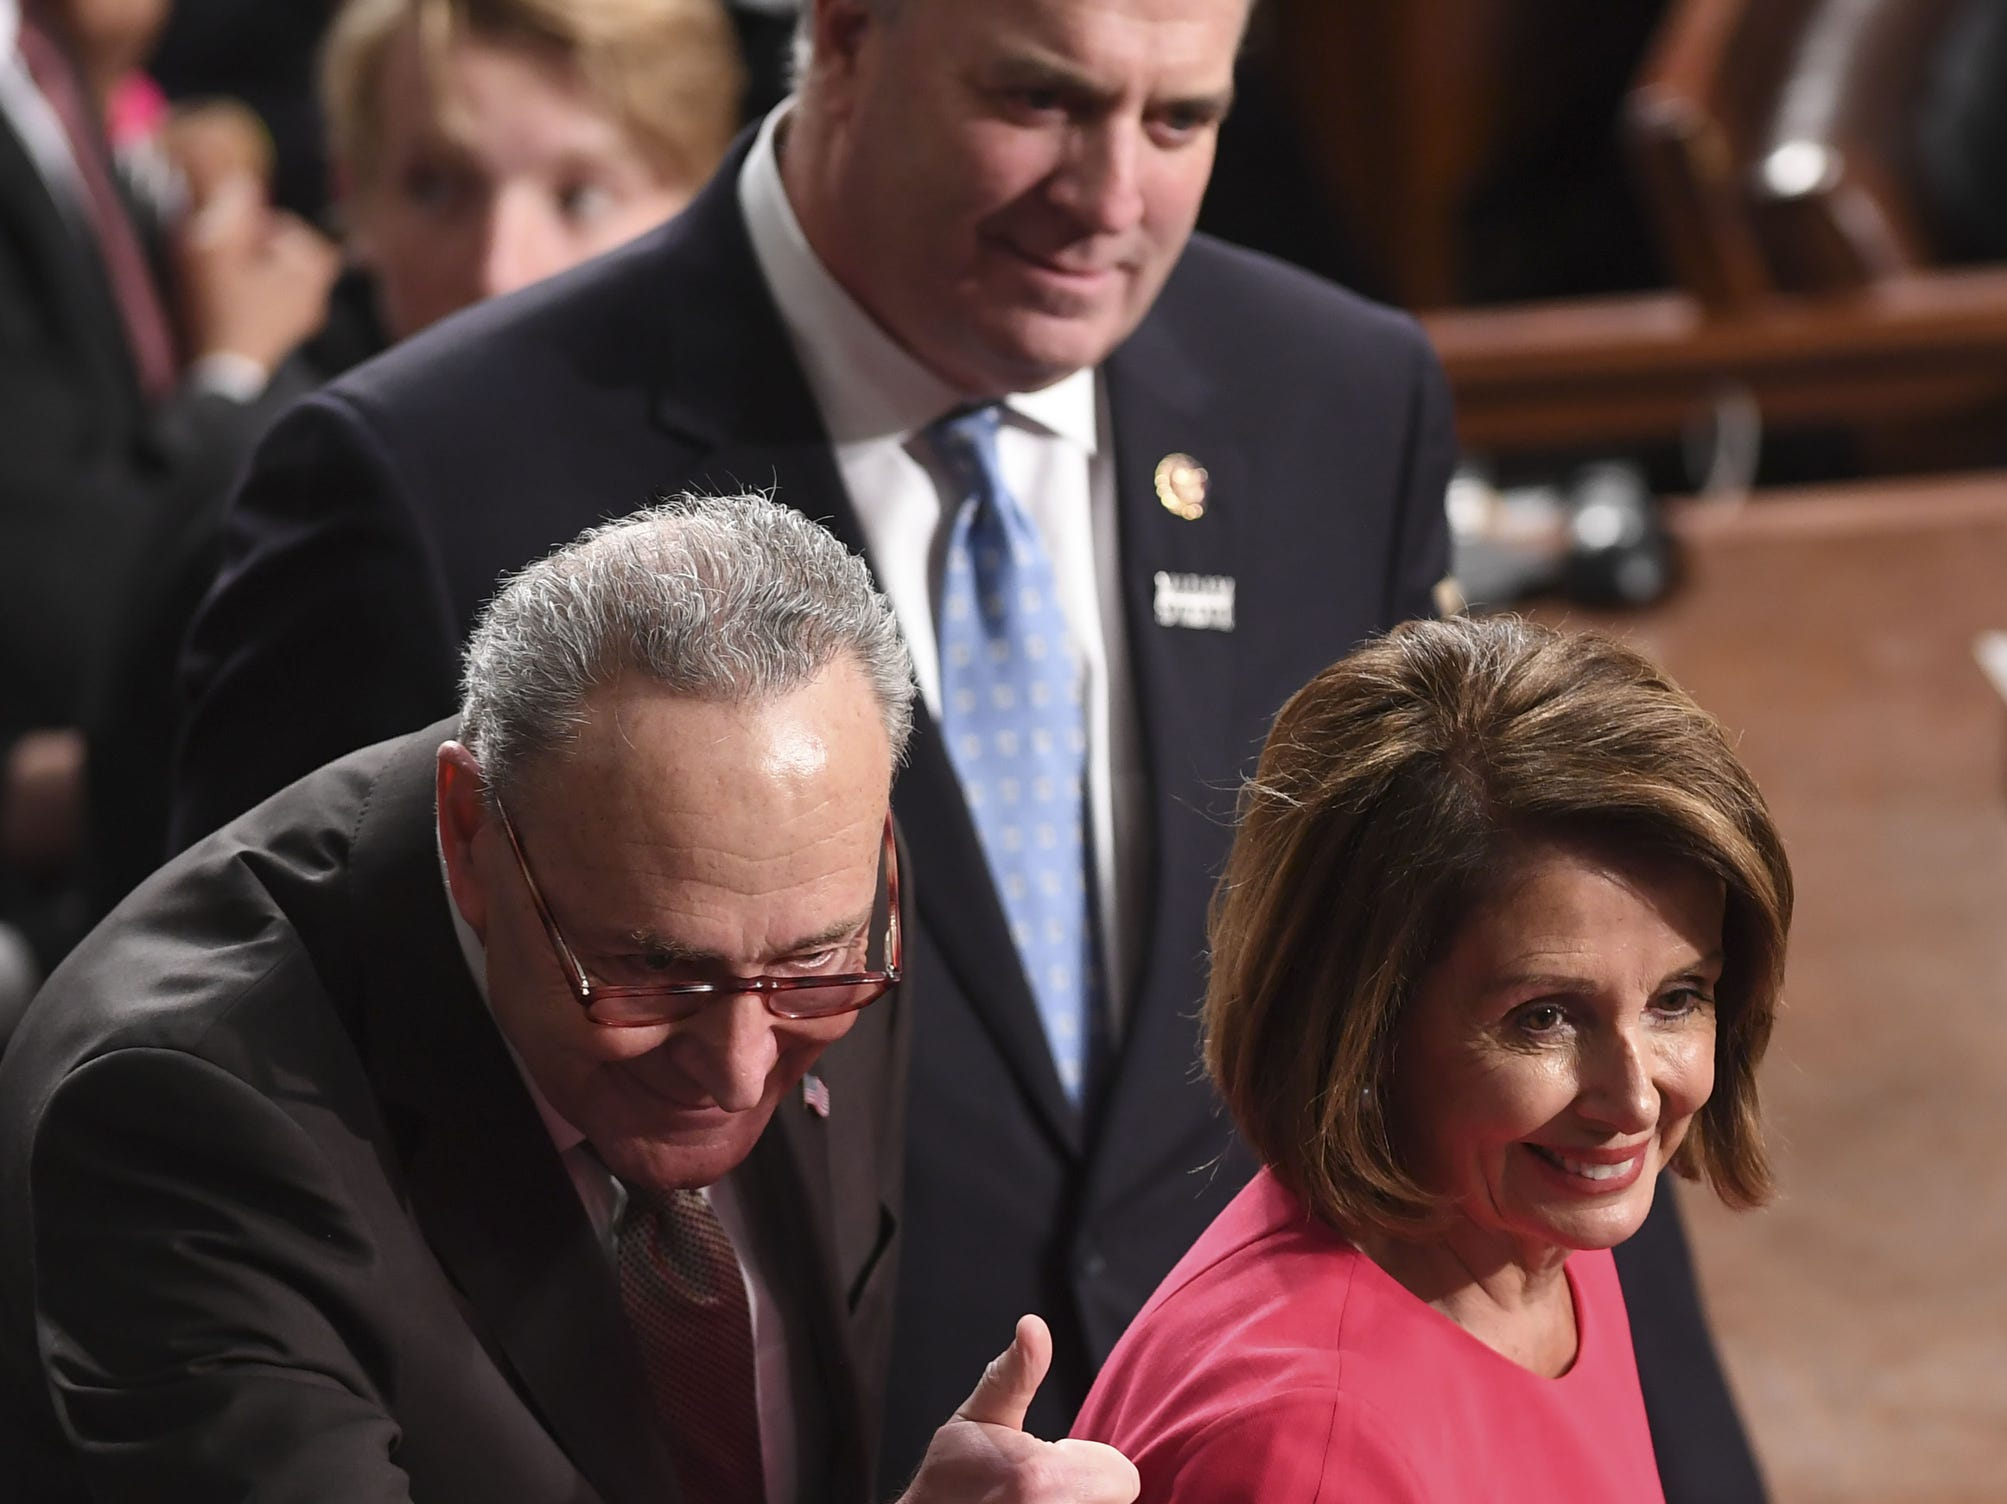 Incoming Speaker of the House Nancy Pelosi, D-CA, and Senator Chuck Schumer, D-NY, arrive for the beginning of the 116th US Congress.